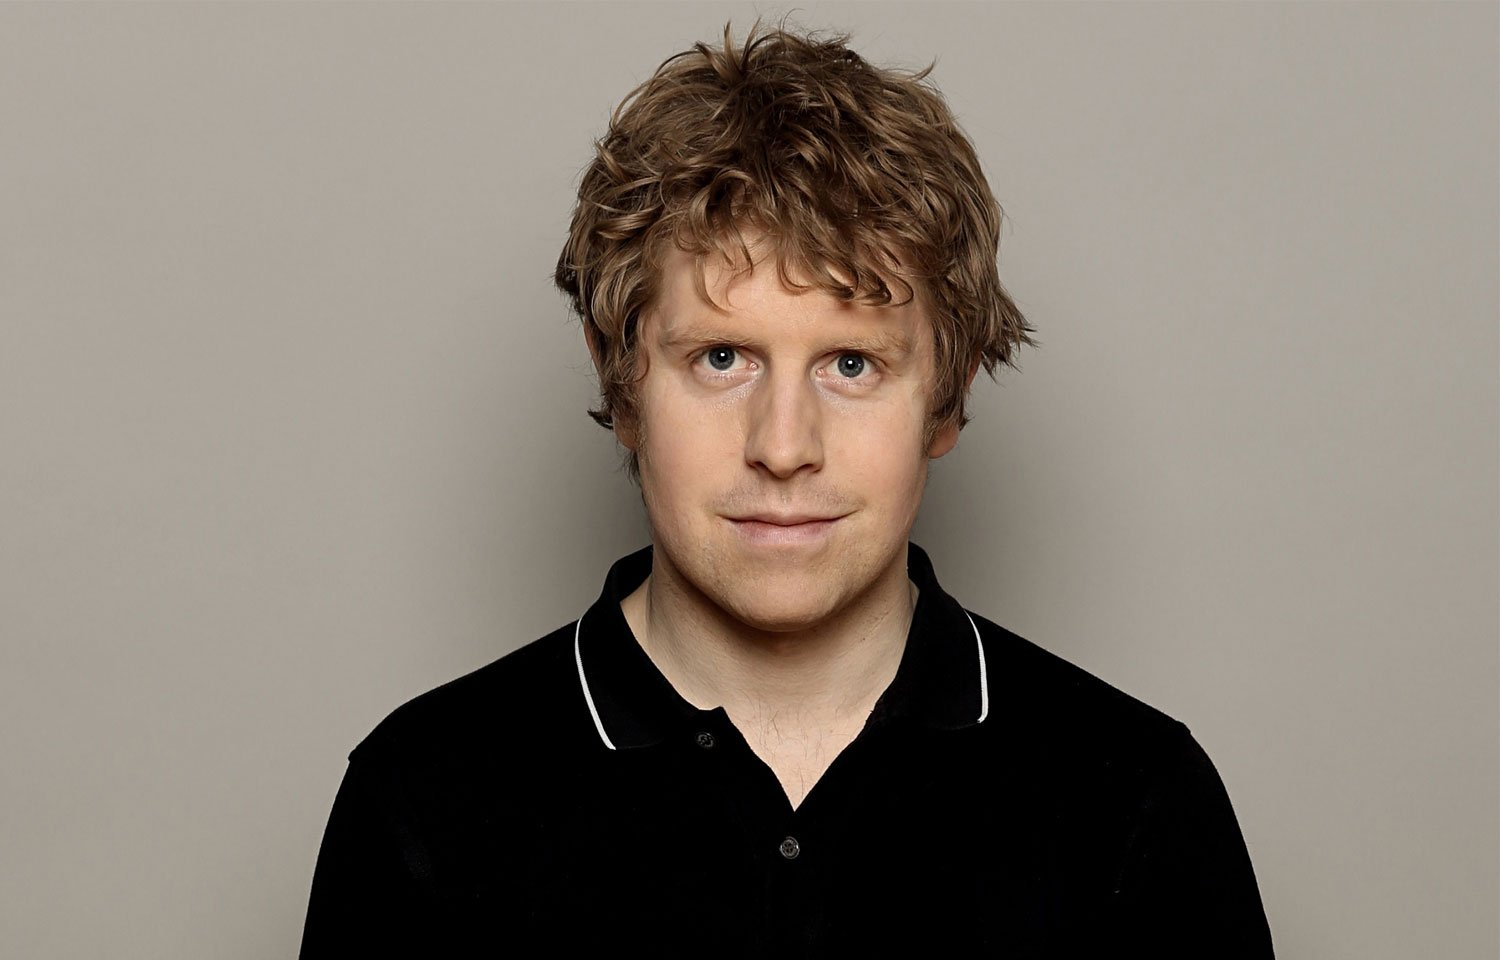 JOSH WIDDICOMBE TO HOST BRAND NEW PANEL SHOW HYPOTHETICAL